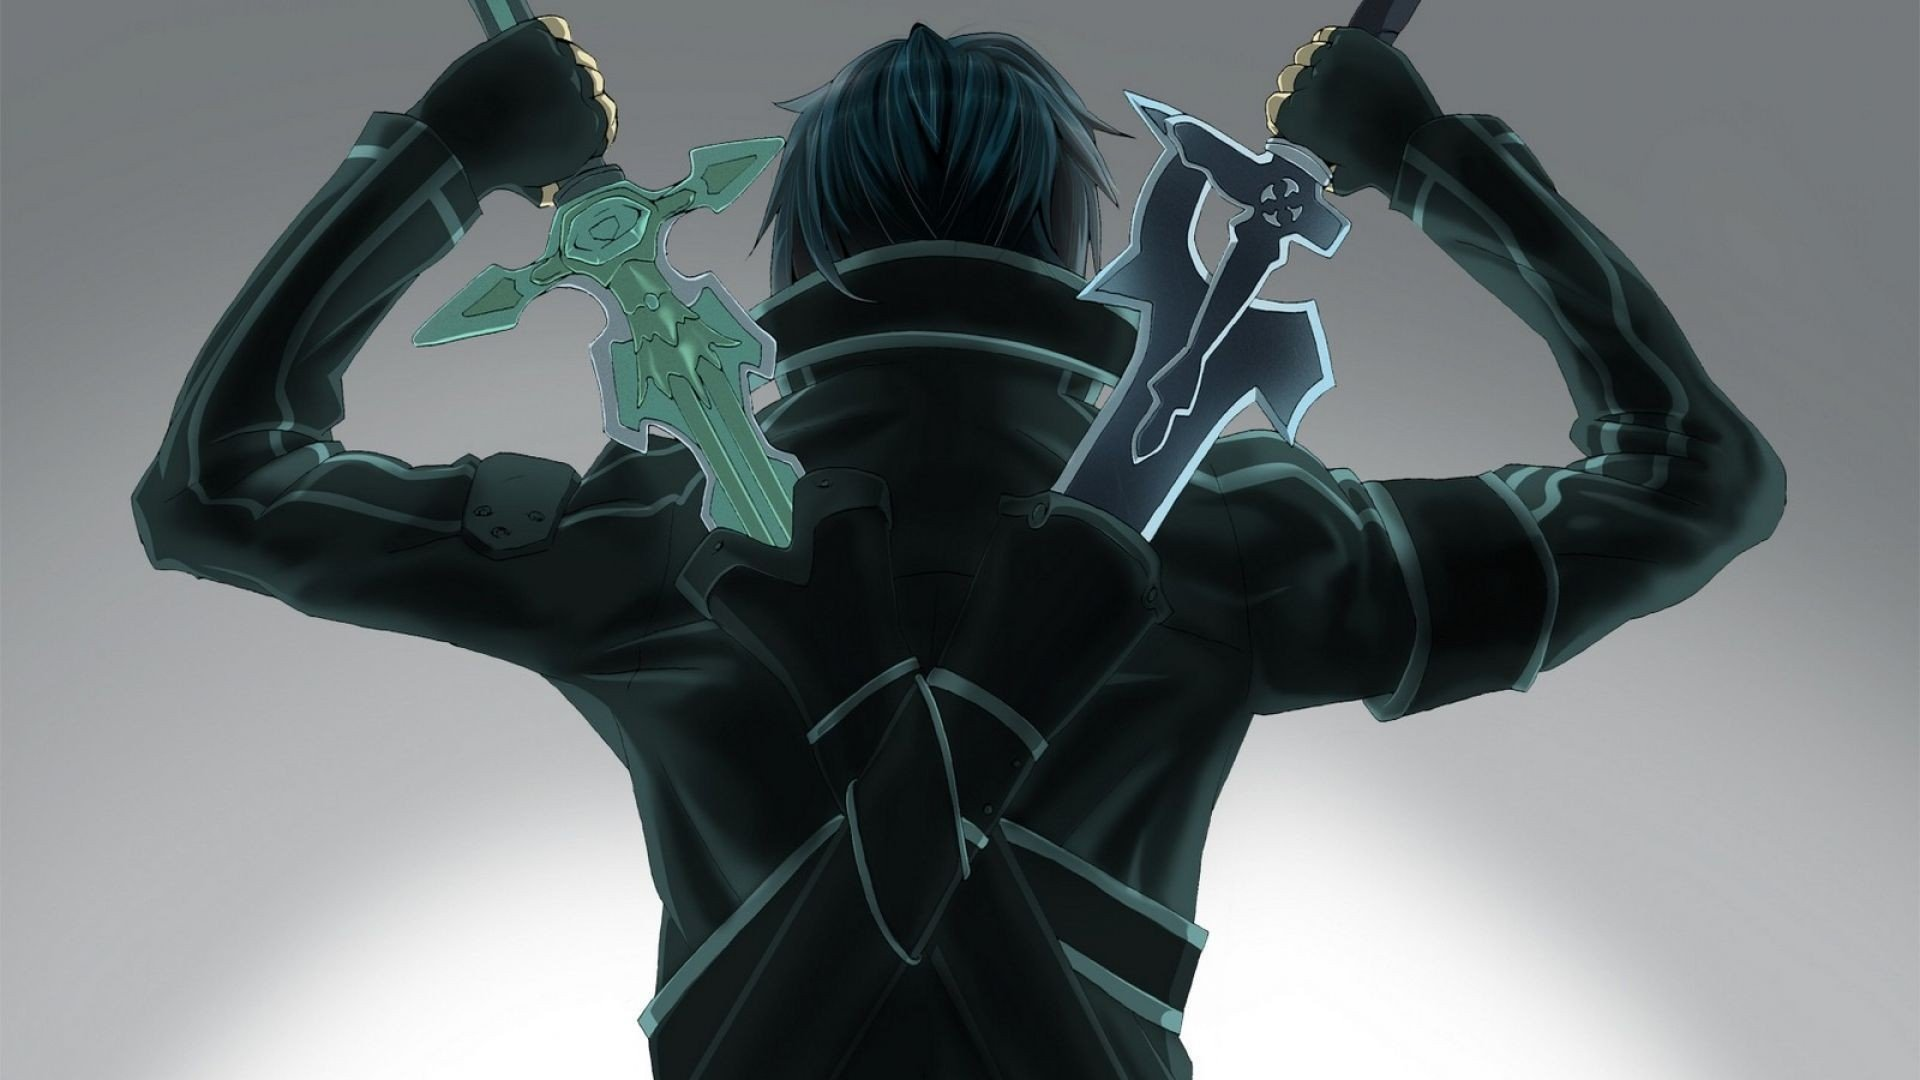 2453 Sword Art Online HD Wallpapers  Background Images